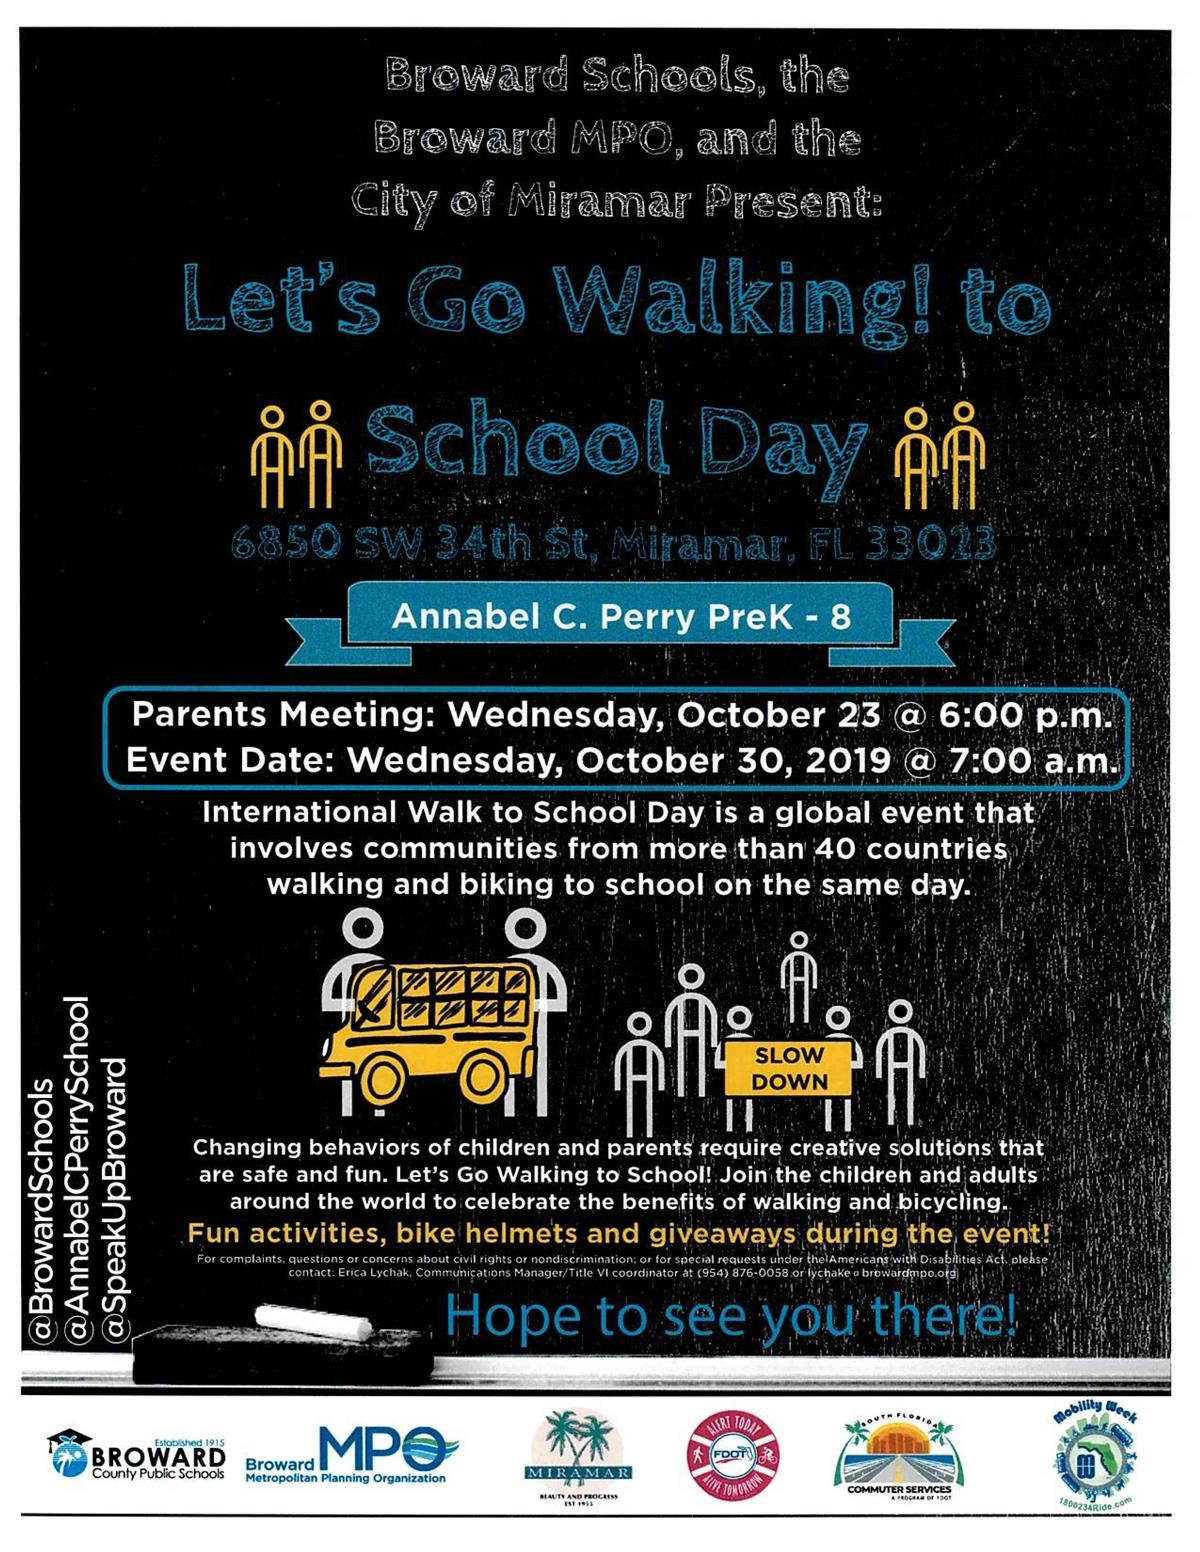 Let's Go Walking to School Day